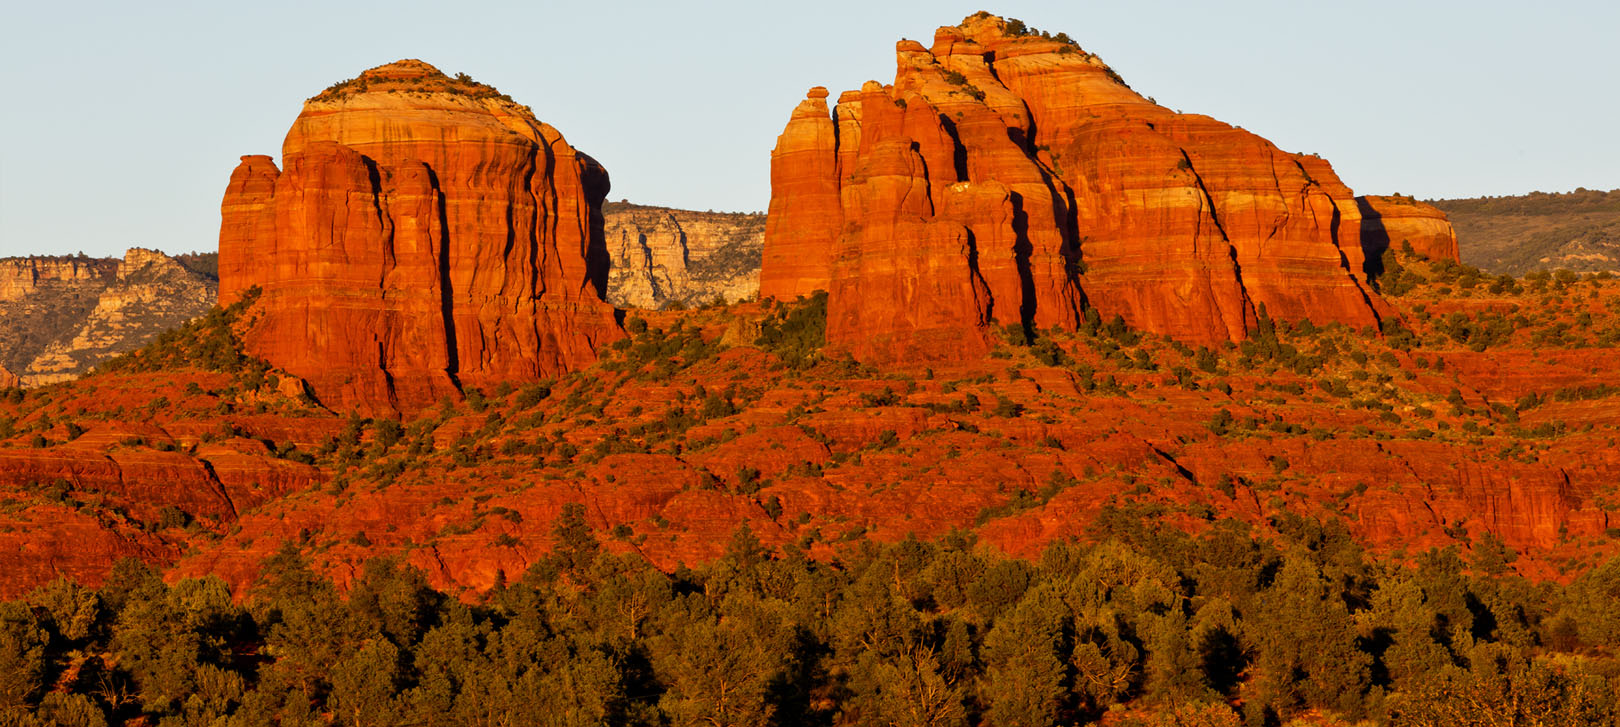 Las Vegas To Sedona >> Arizona State Parks' boss wants to bring stability to agency after missteps | Williams-Grand ...